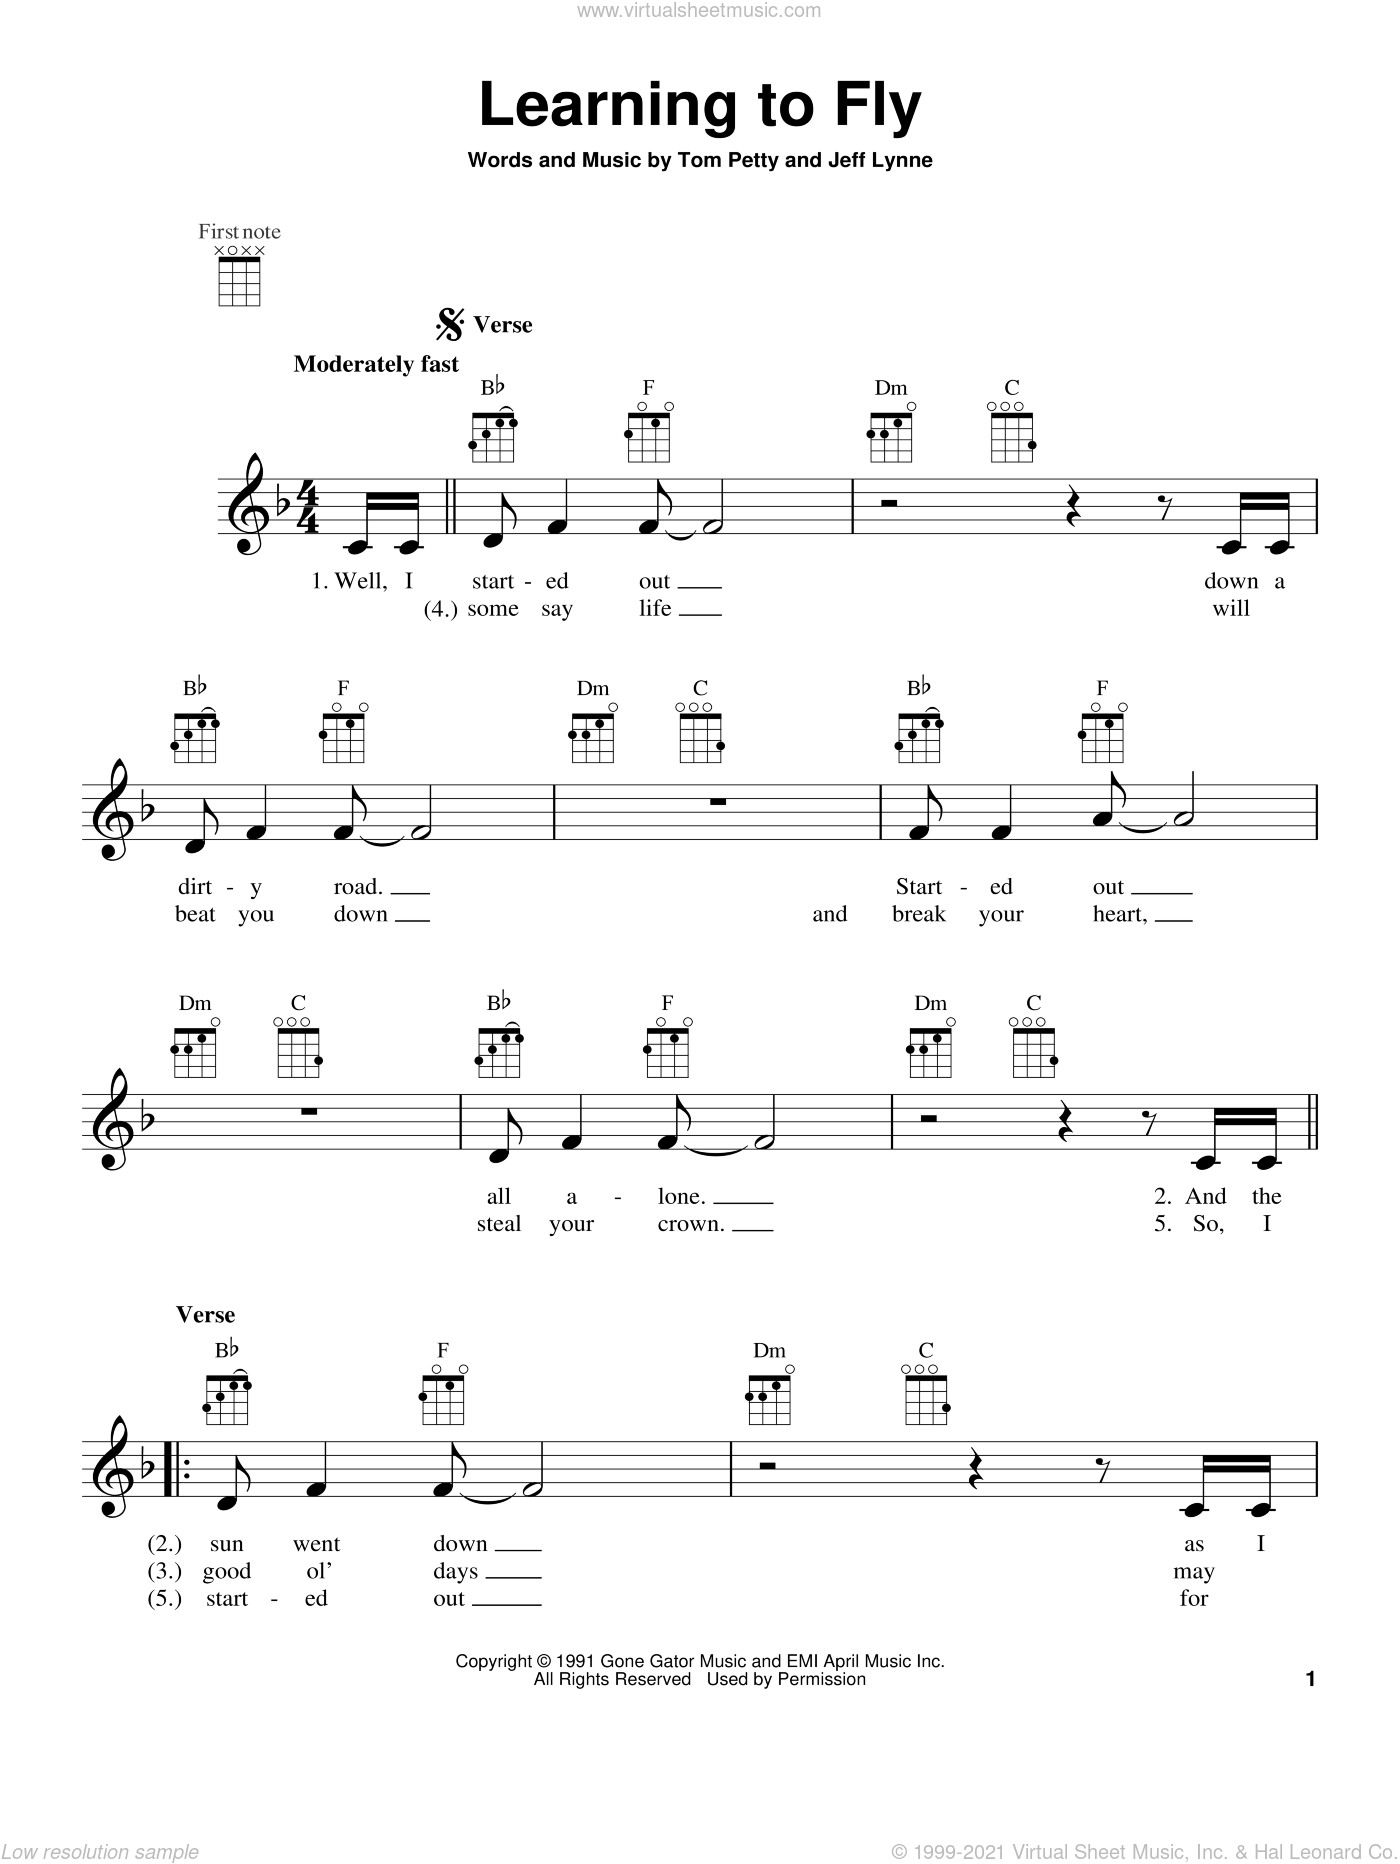 Learning To Fly sheet music for ukulele by Tom Petty, intermediate skill level